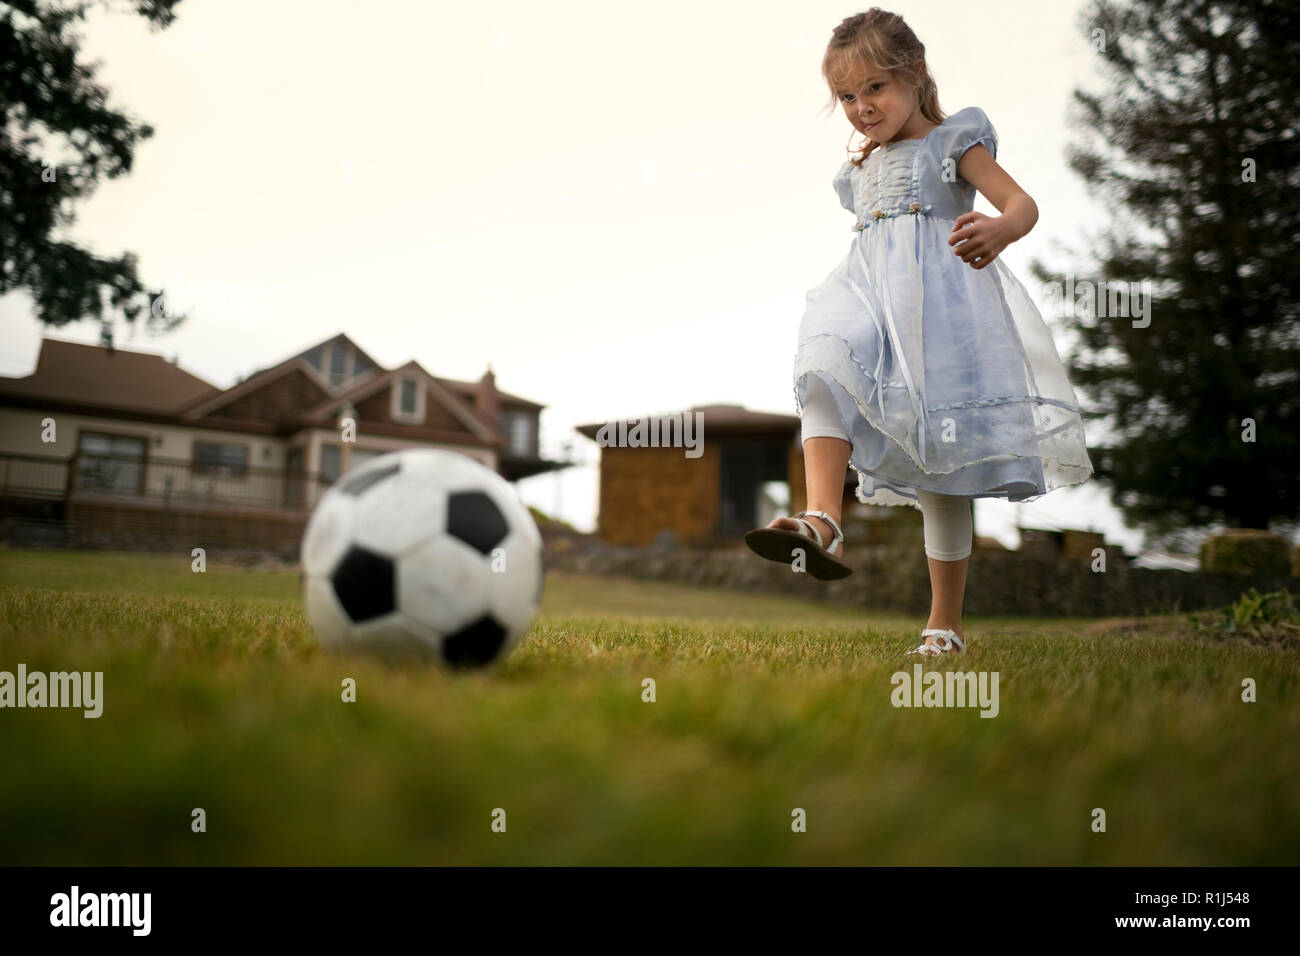 Smiling little girl in a dress has fun kicking a soccer ball on the grass. Stock Photo